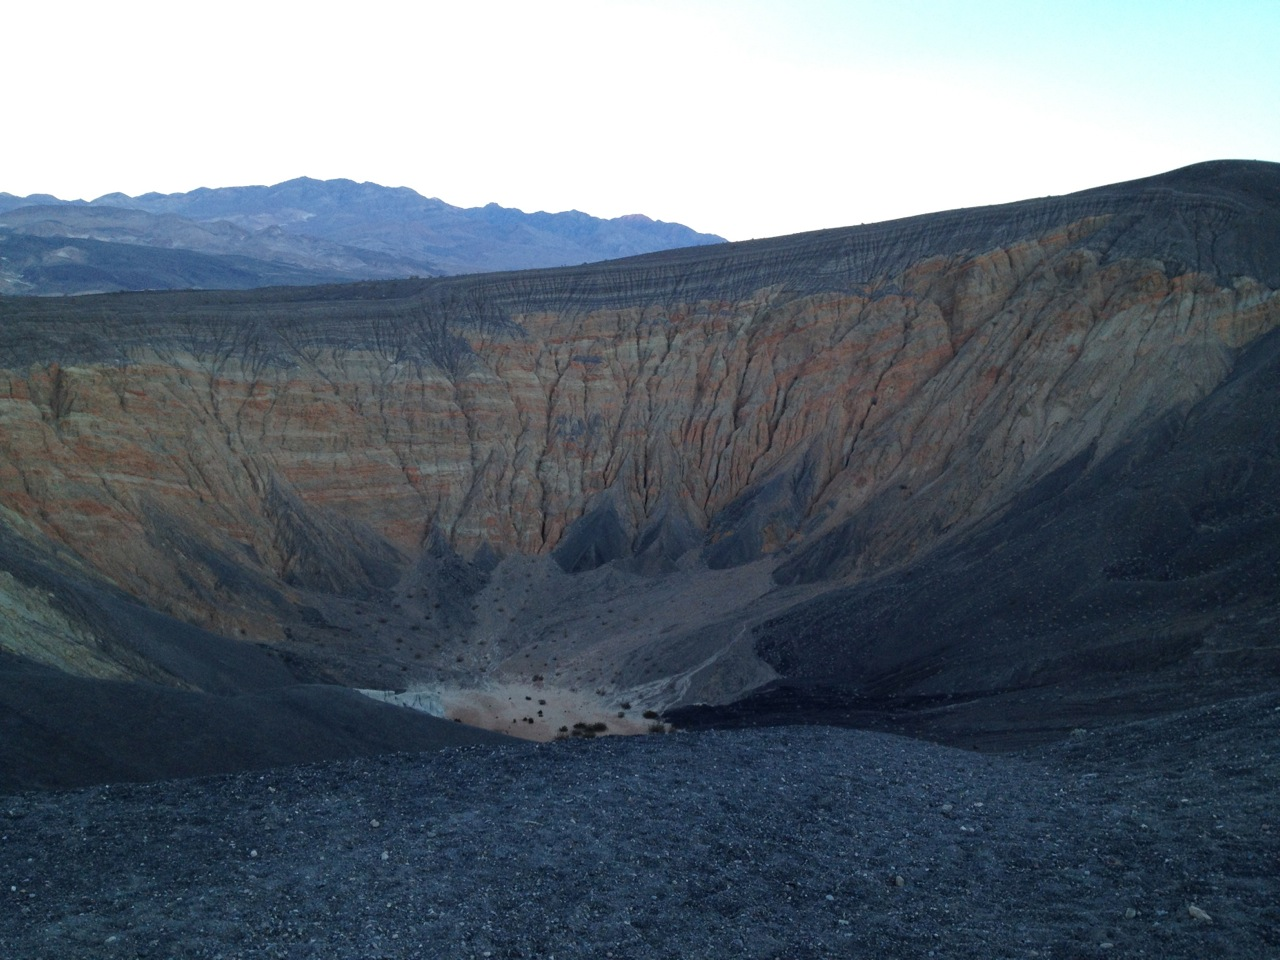 Ubehebe Crater. Not picture: high winds blowing up out of it, threatening to rip my phone/camera out of my hands.